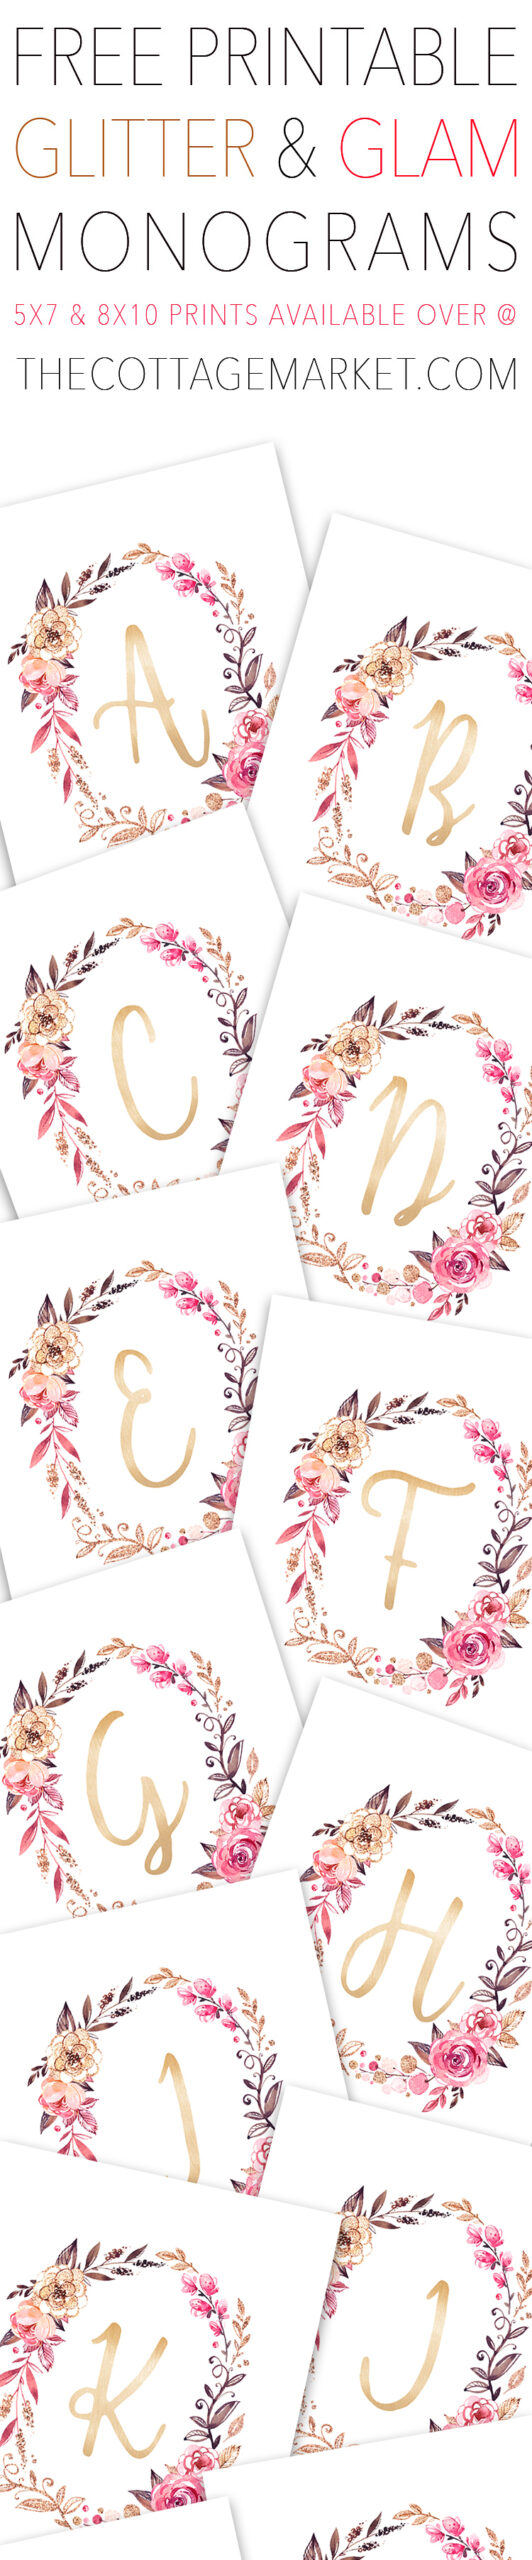 photo regarding Free Monogram Printable identify Glitter and Glam Monogram Wall Artwork - Totally free Wonderful Elements For Yourself